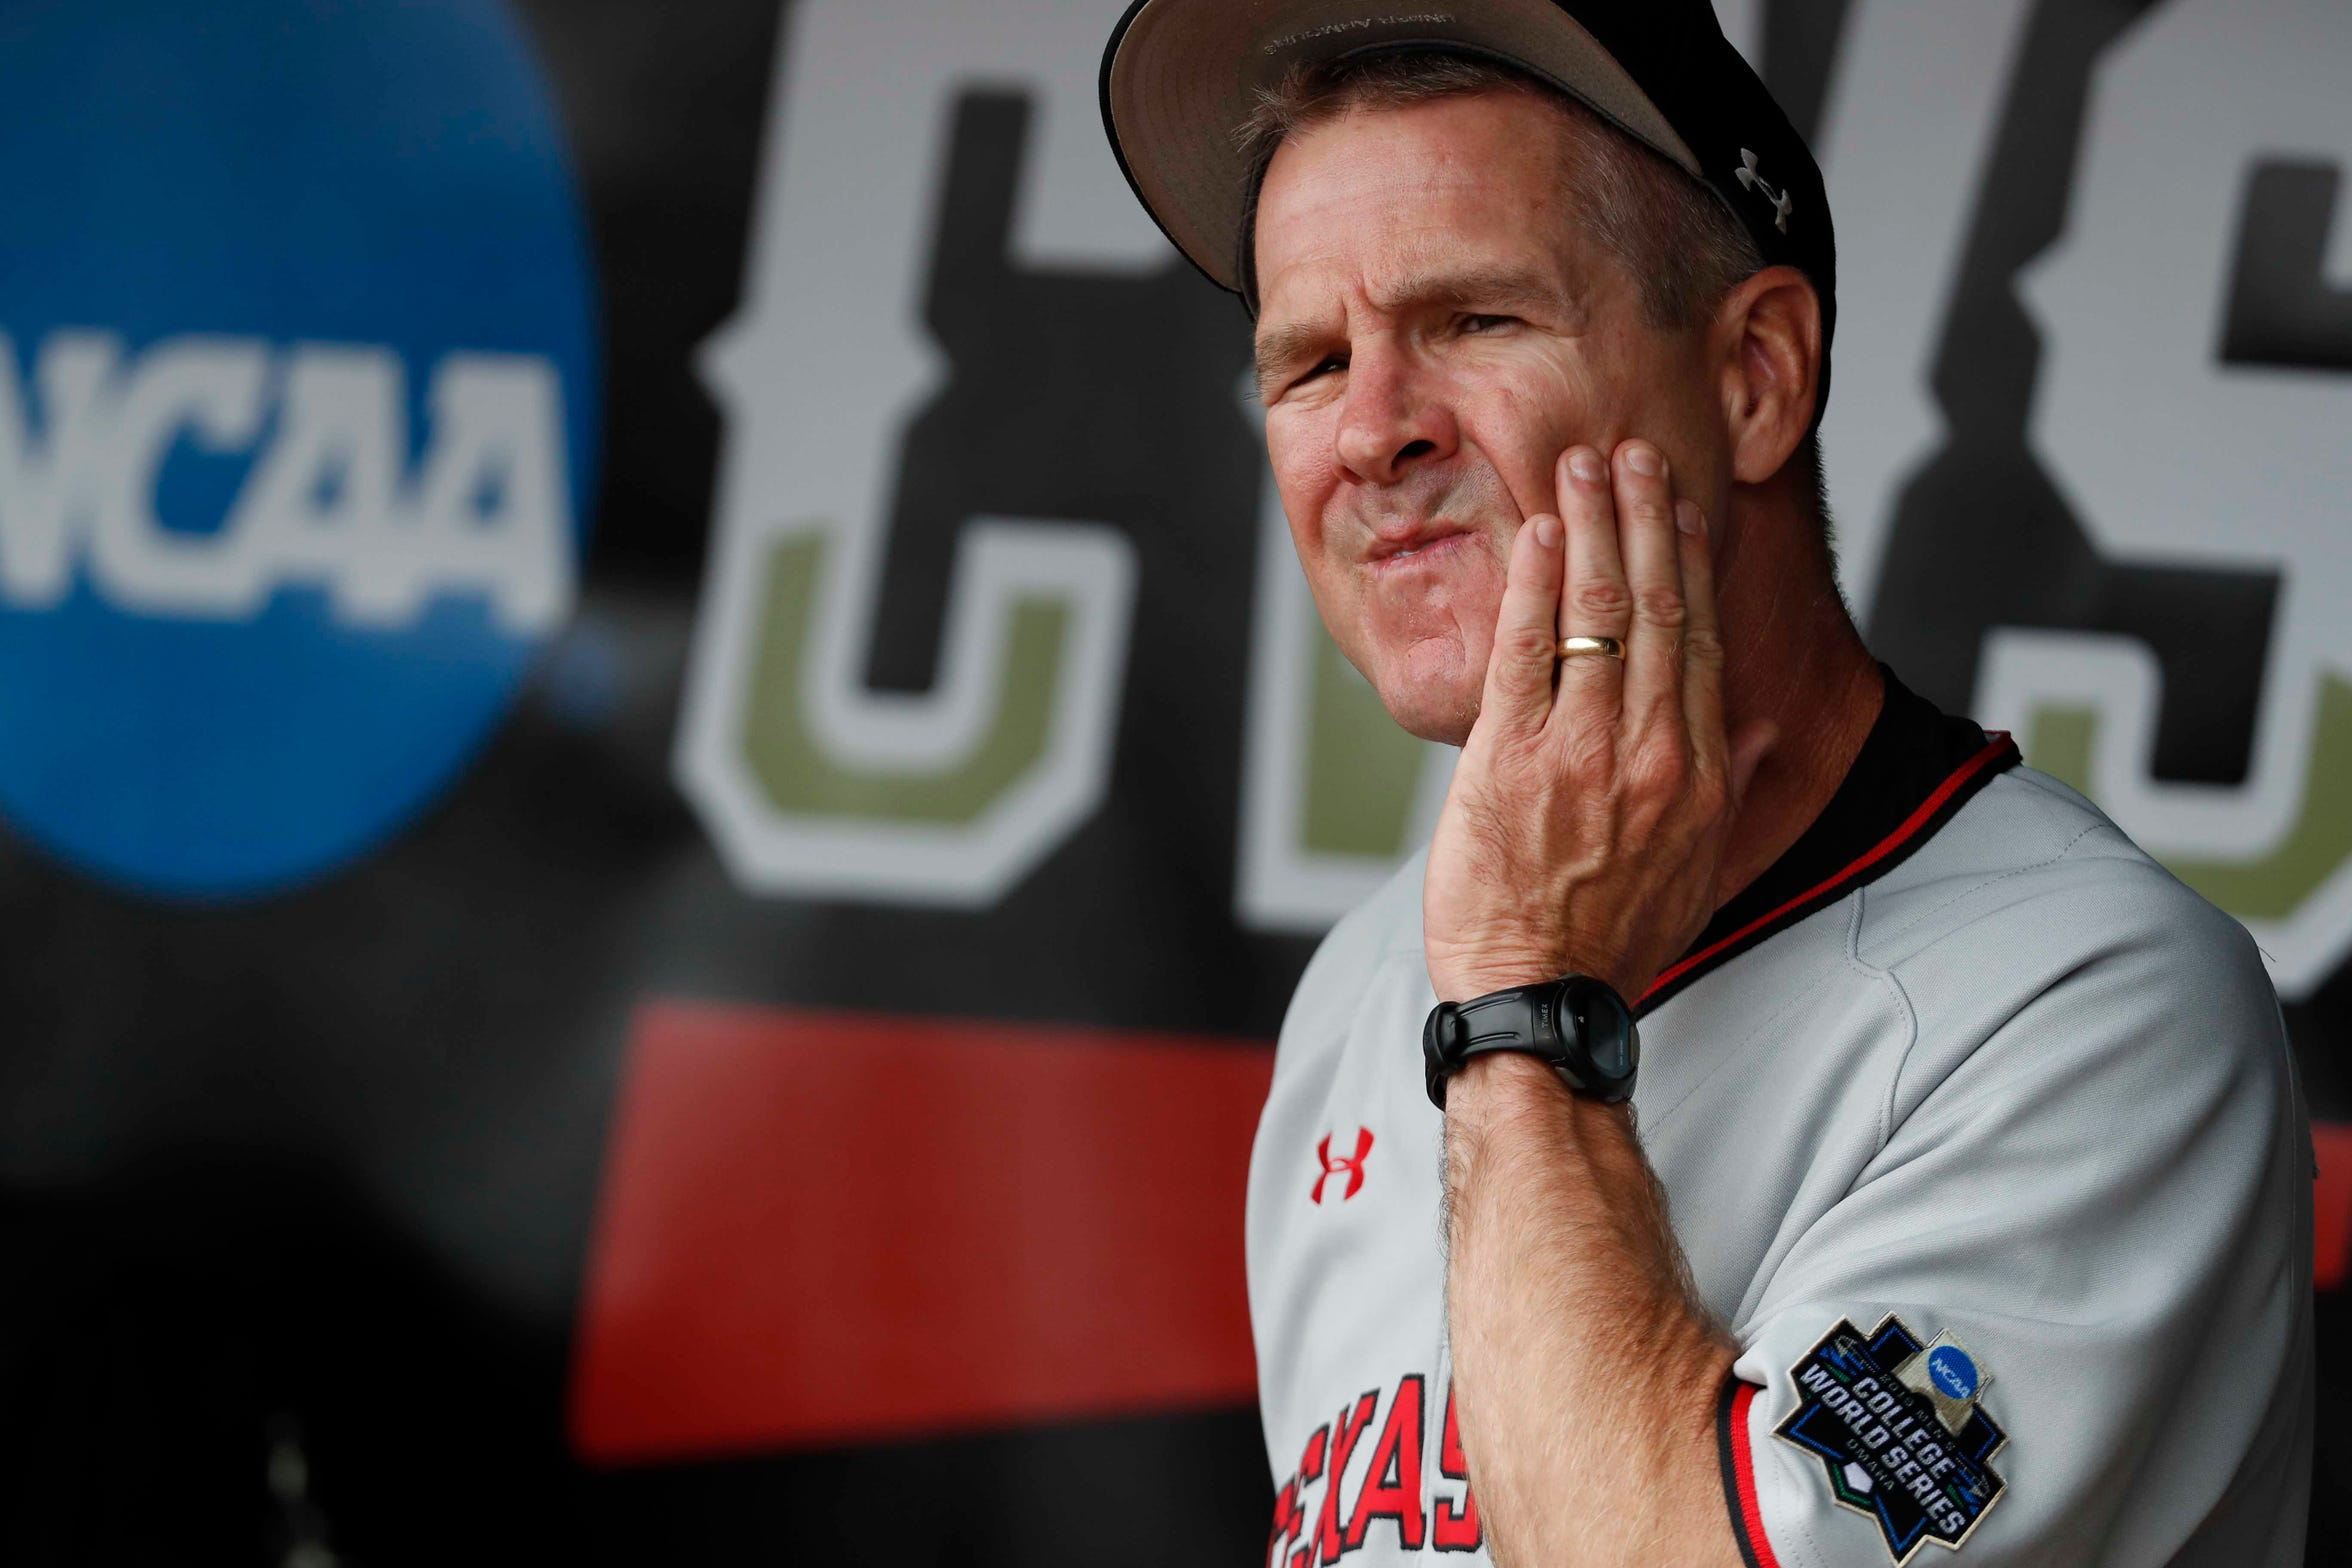 Texas Tech Red Raiders head coach Tim Tadlock cubs his face prior to the game against the Michigan Wolverines in the 2019 College World Series at TD Ameritrade Park.